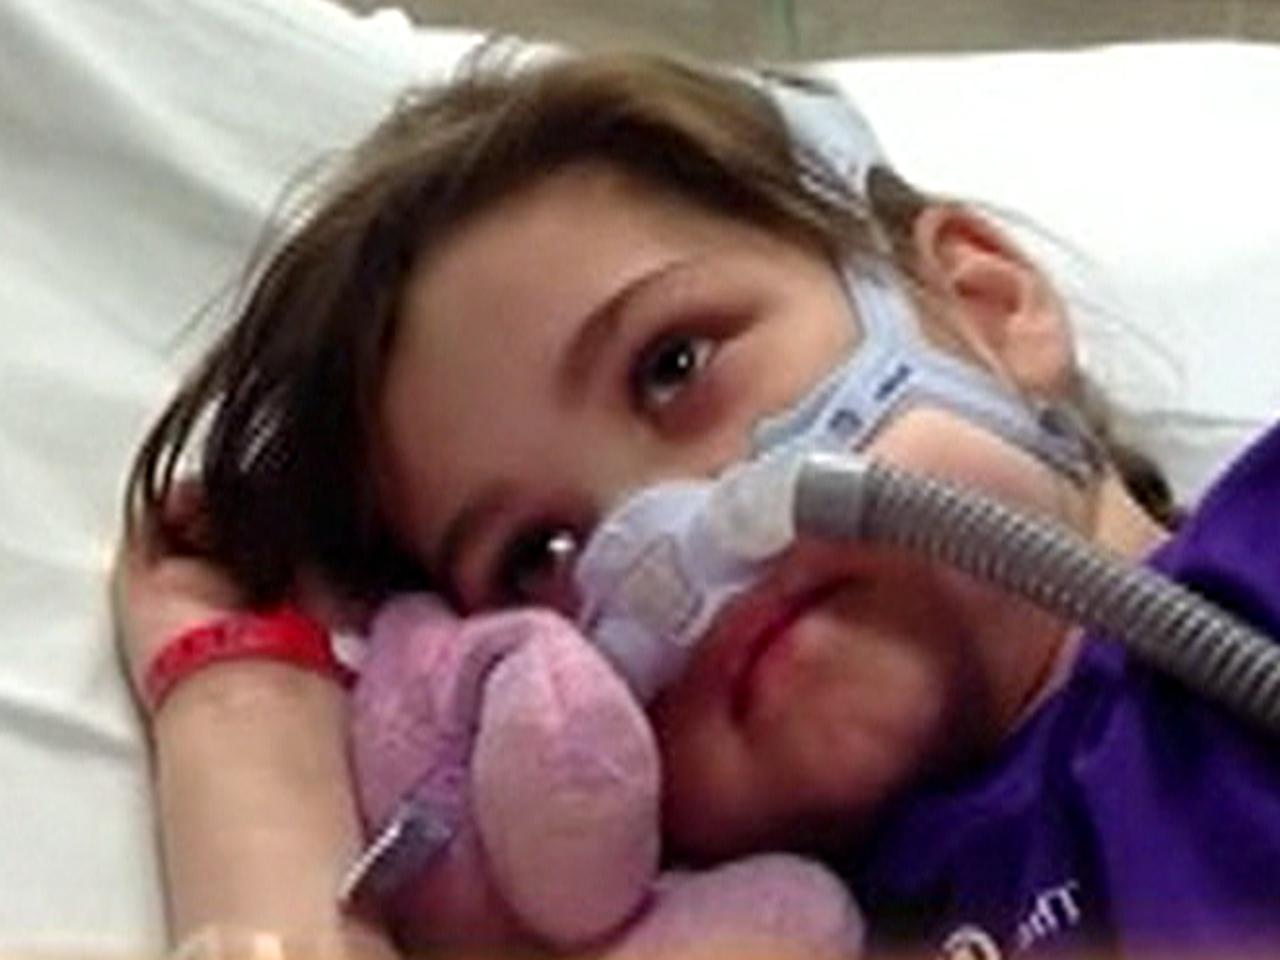 Lung Transplant Rule That Saved Sarah is Final